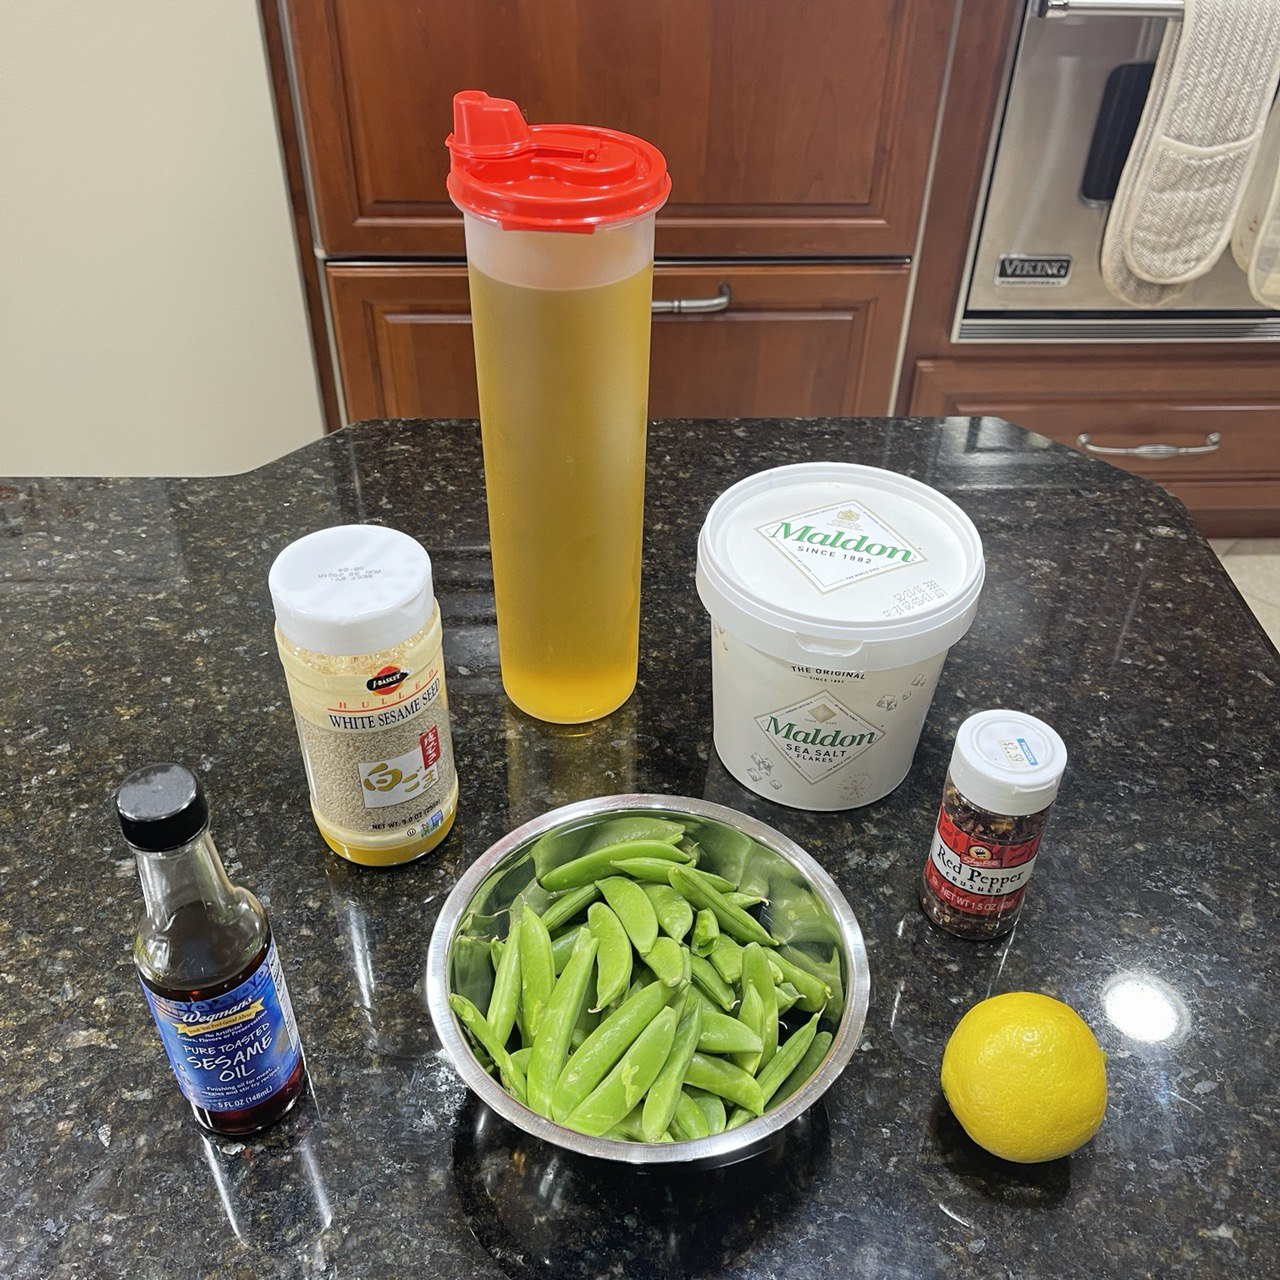 ingredients for sautéed sugar snap peas: toasted sesame oil, sesame seeds, avocado oil, Maldon salt, crushed red pepper, a lemon, and 8 oz of sugar snap peas